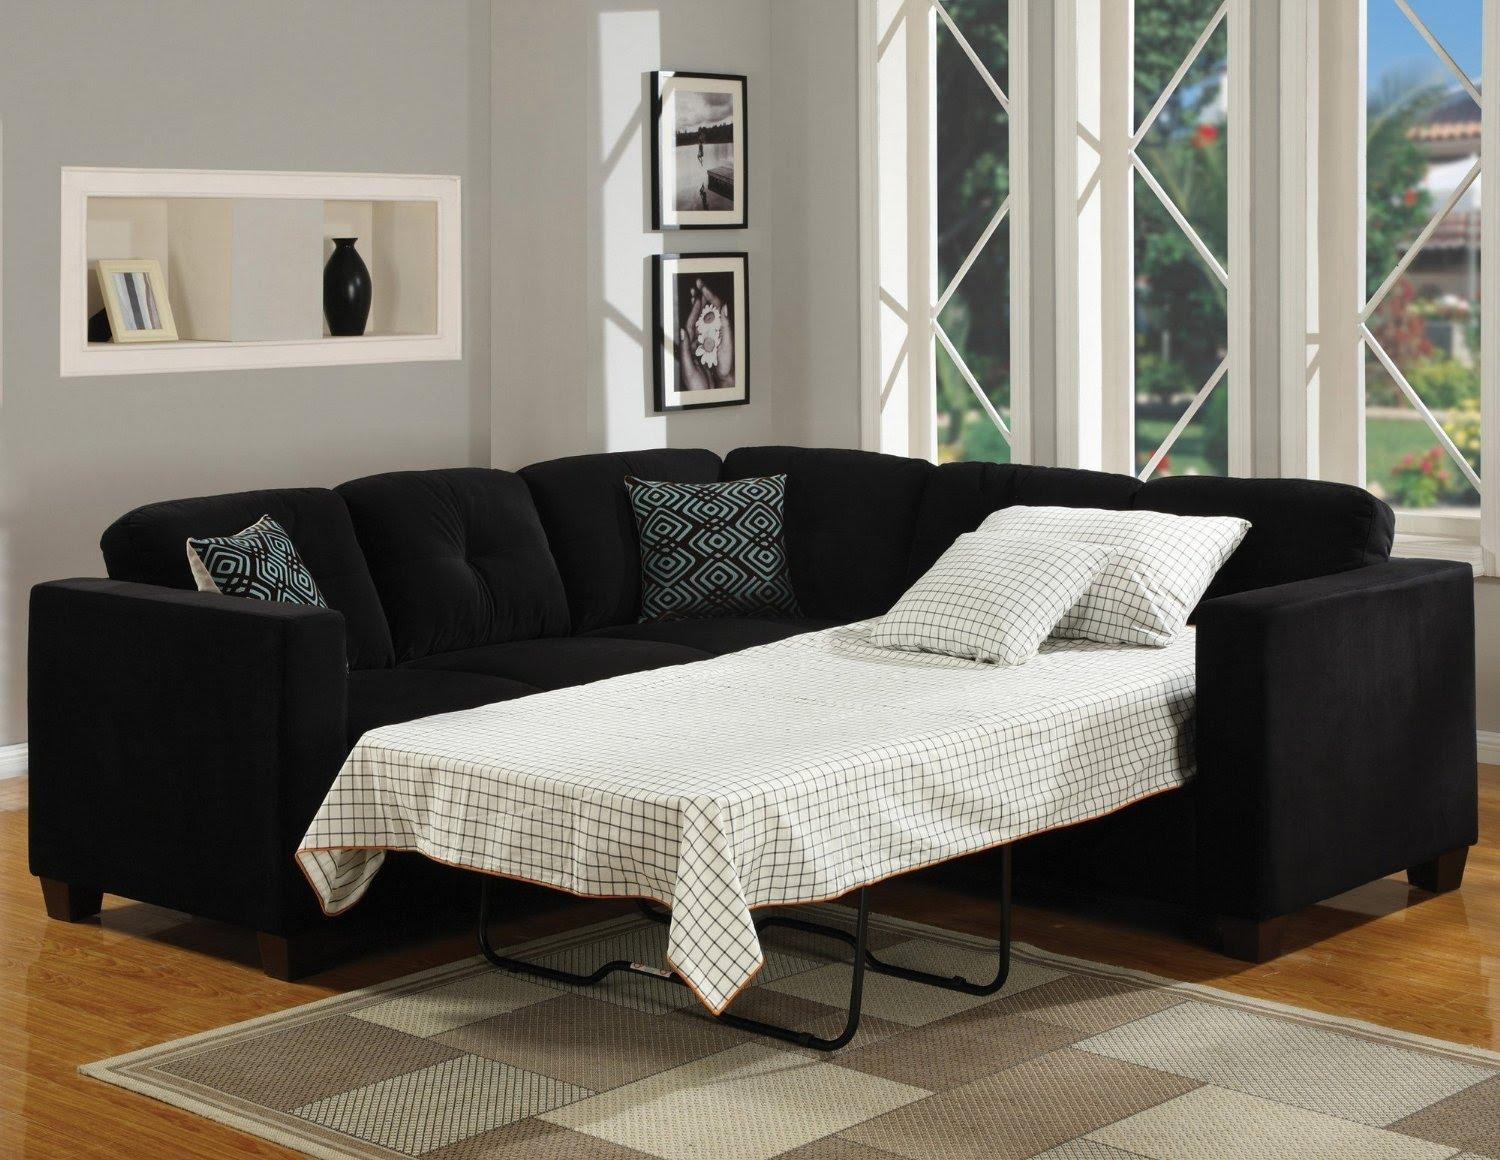 Sectional Sleeper Sofas | Roselawnlutheran For Black Leather Sectional Sleeper Sofas (Image 15 of 21)